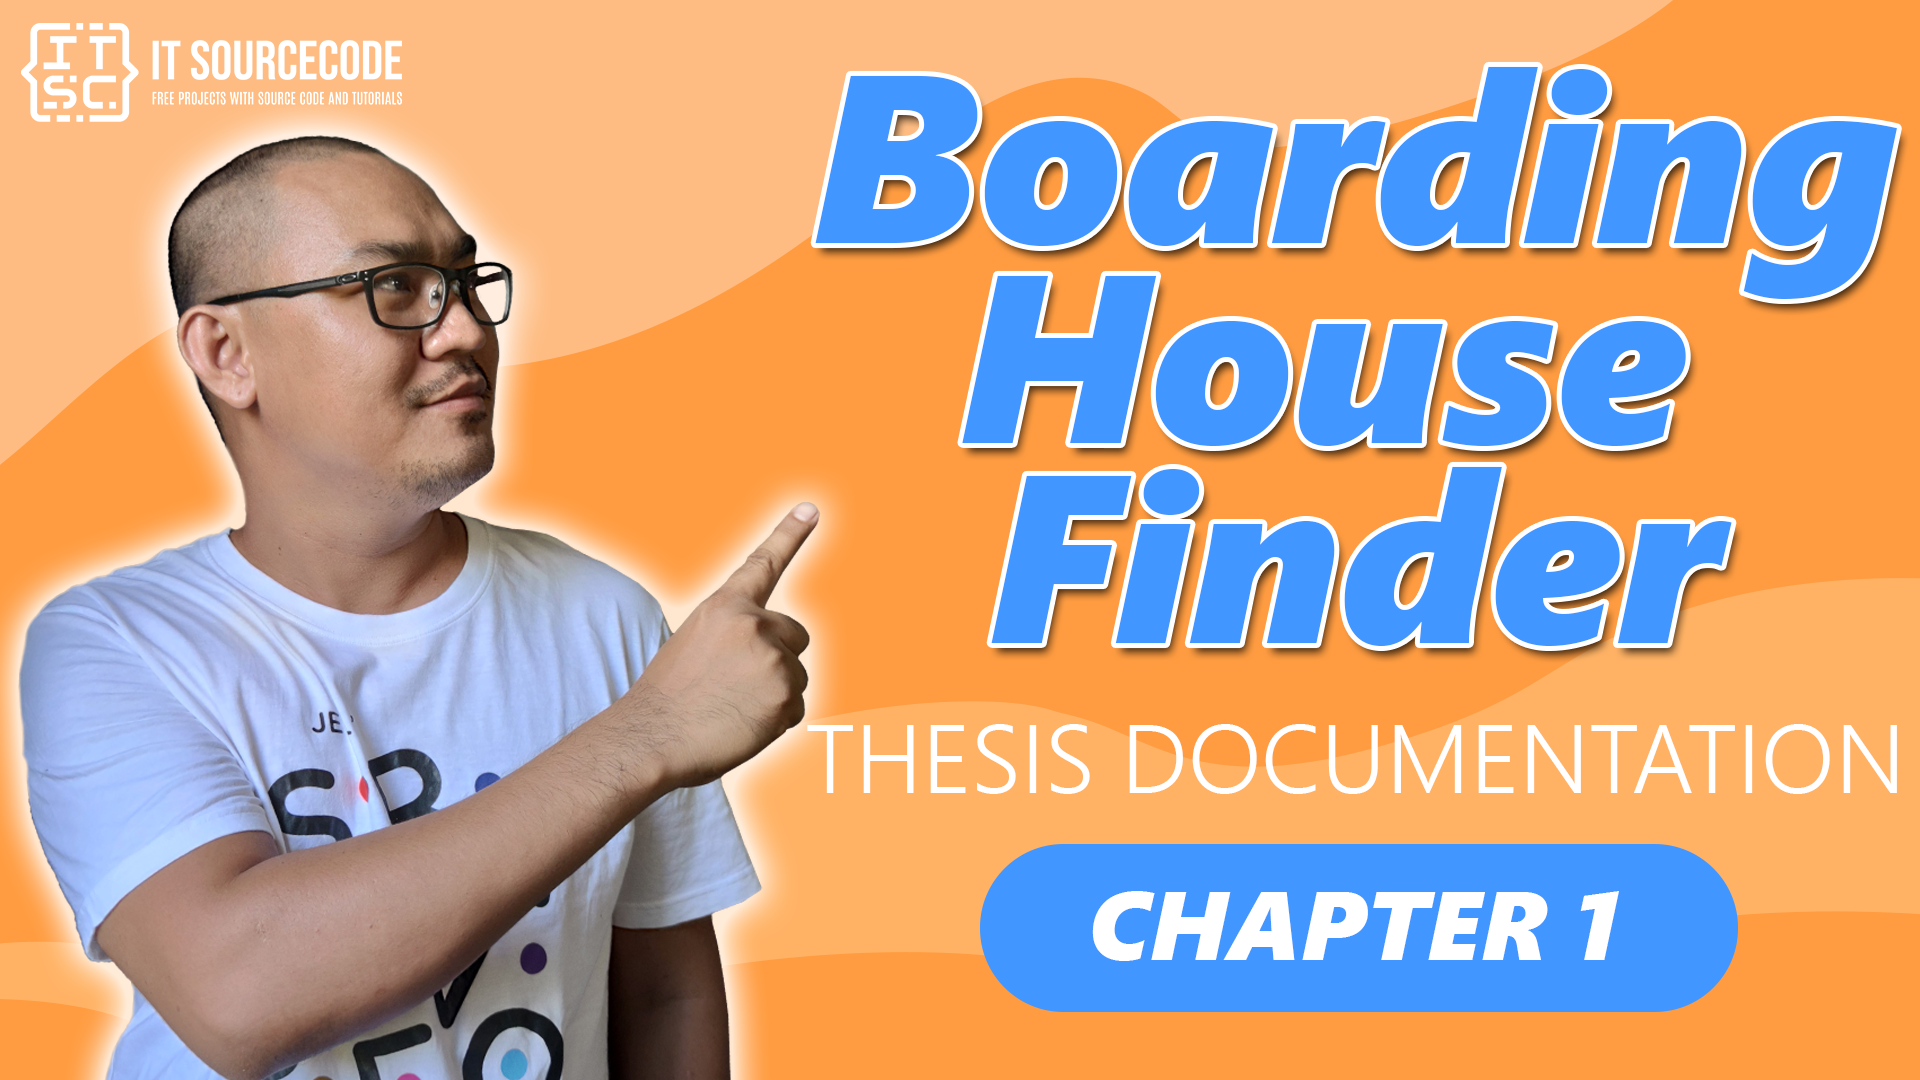 Boarding House Finder Thesis Documentation Chapter 1